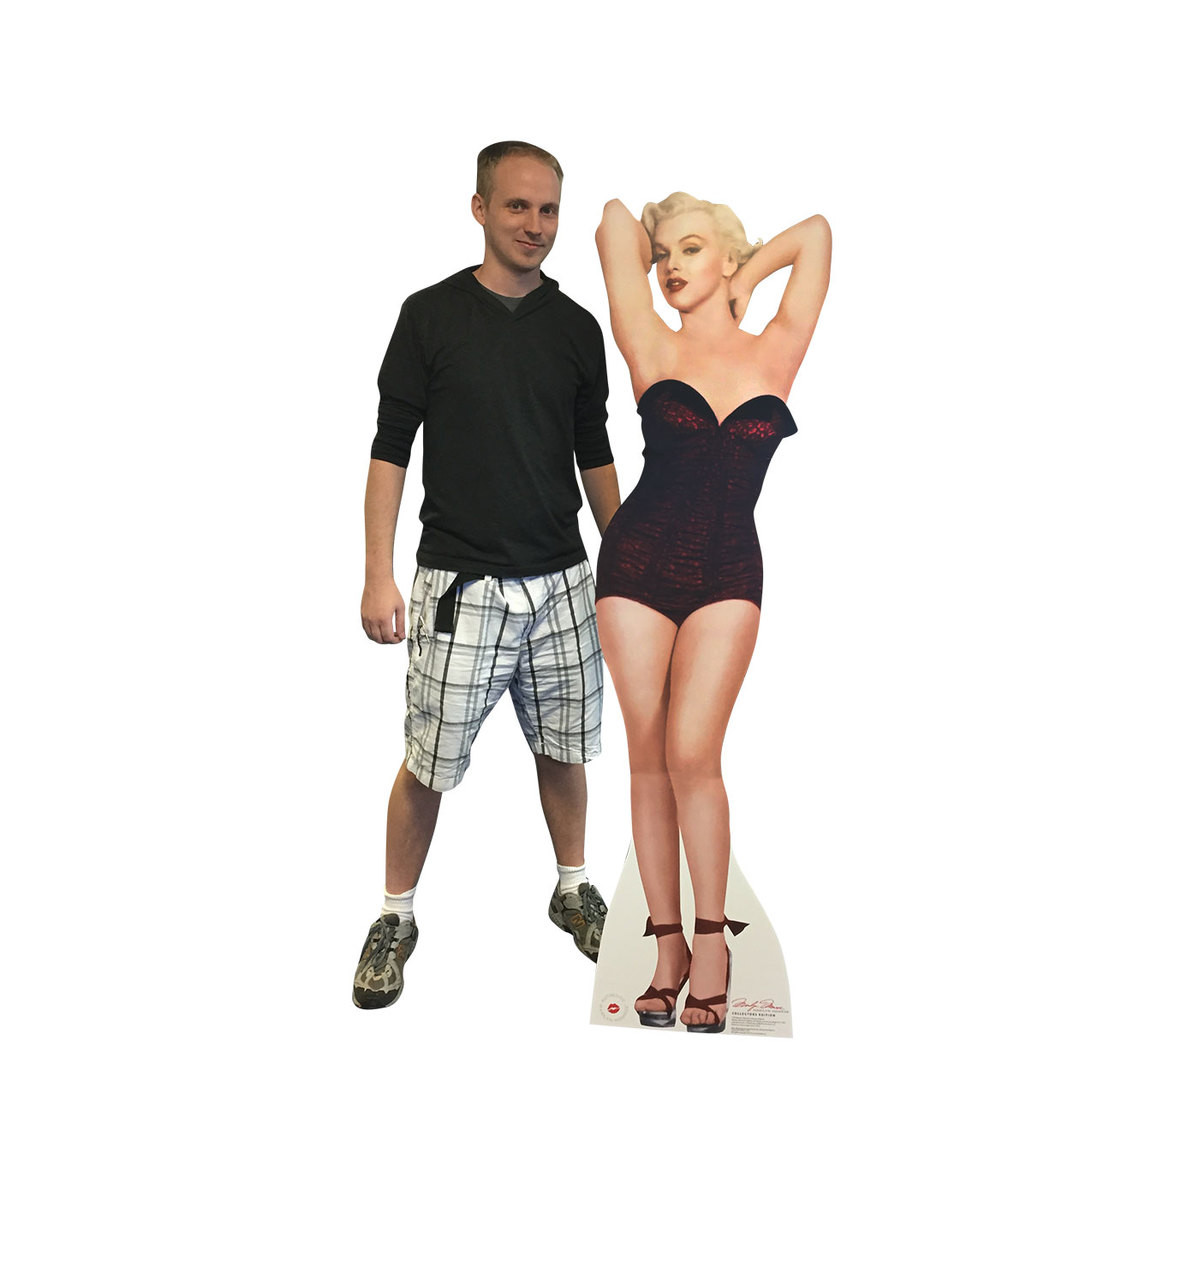 Life-size Marilyn Monroe - Collector's Edition Cardboard Standup 2